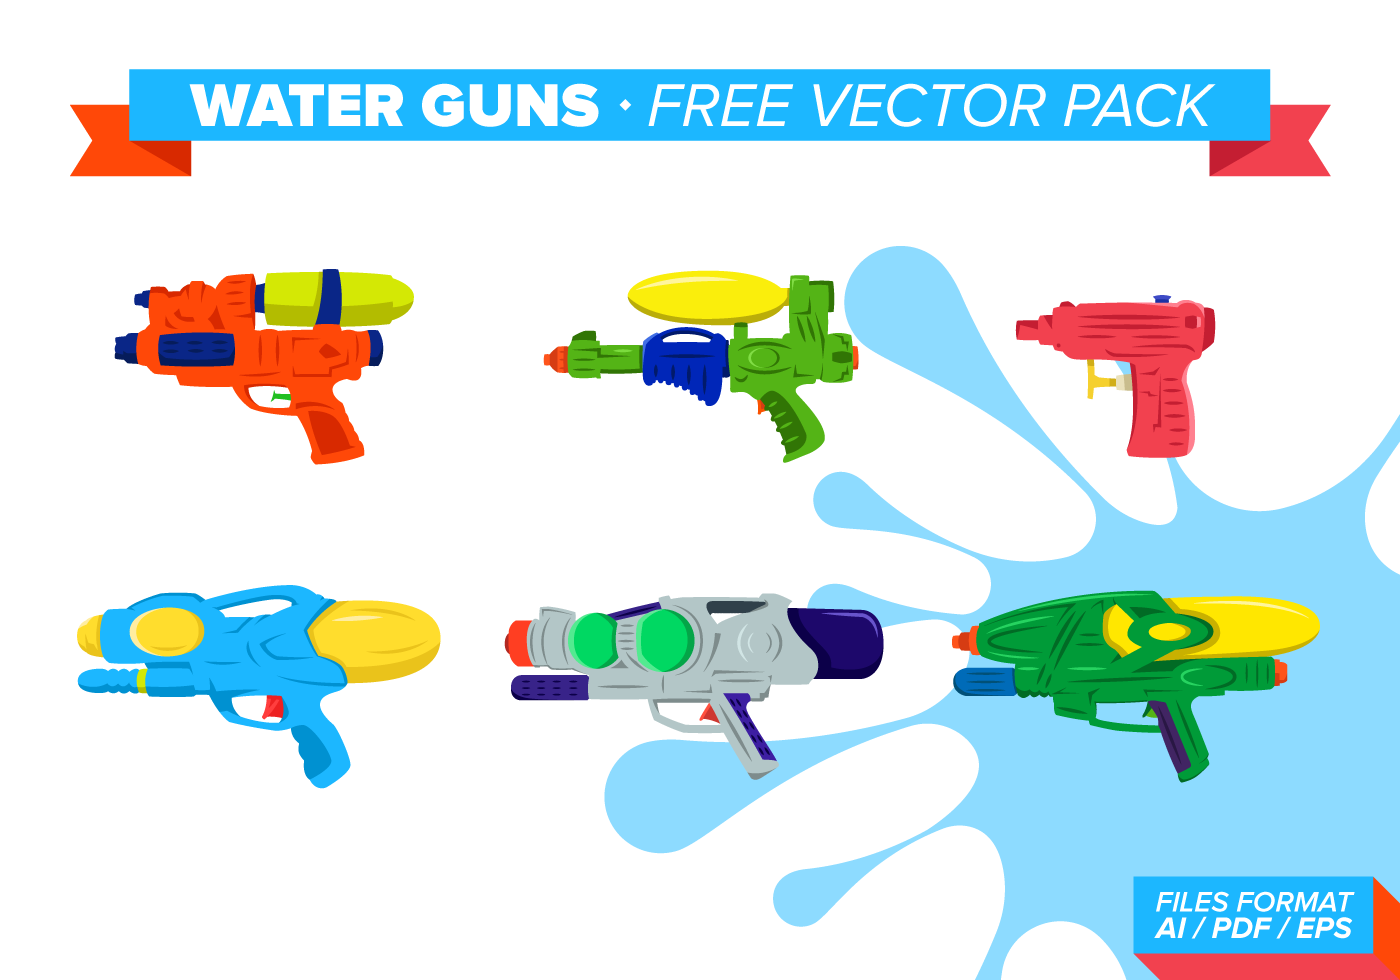 Water Guns Free Vector Pack Download Free Vector Art